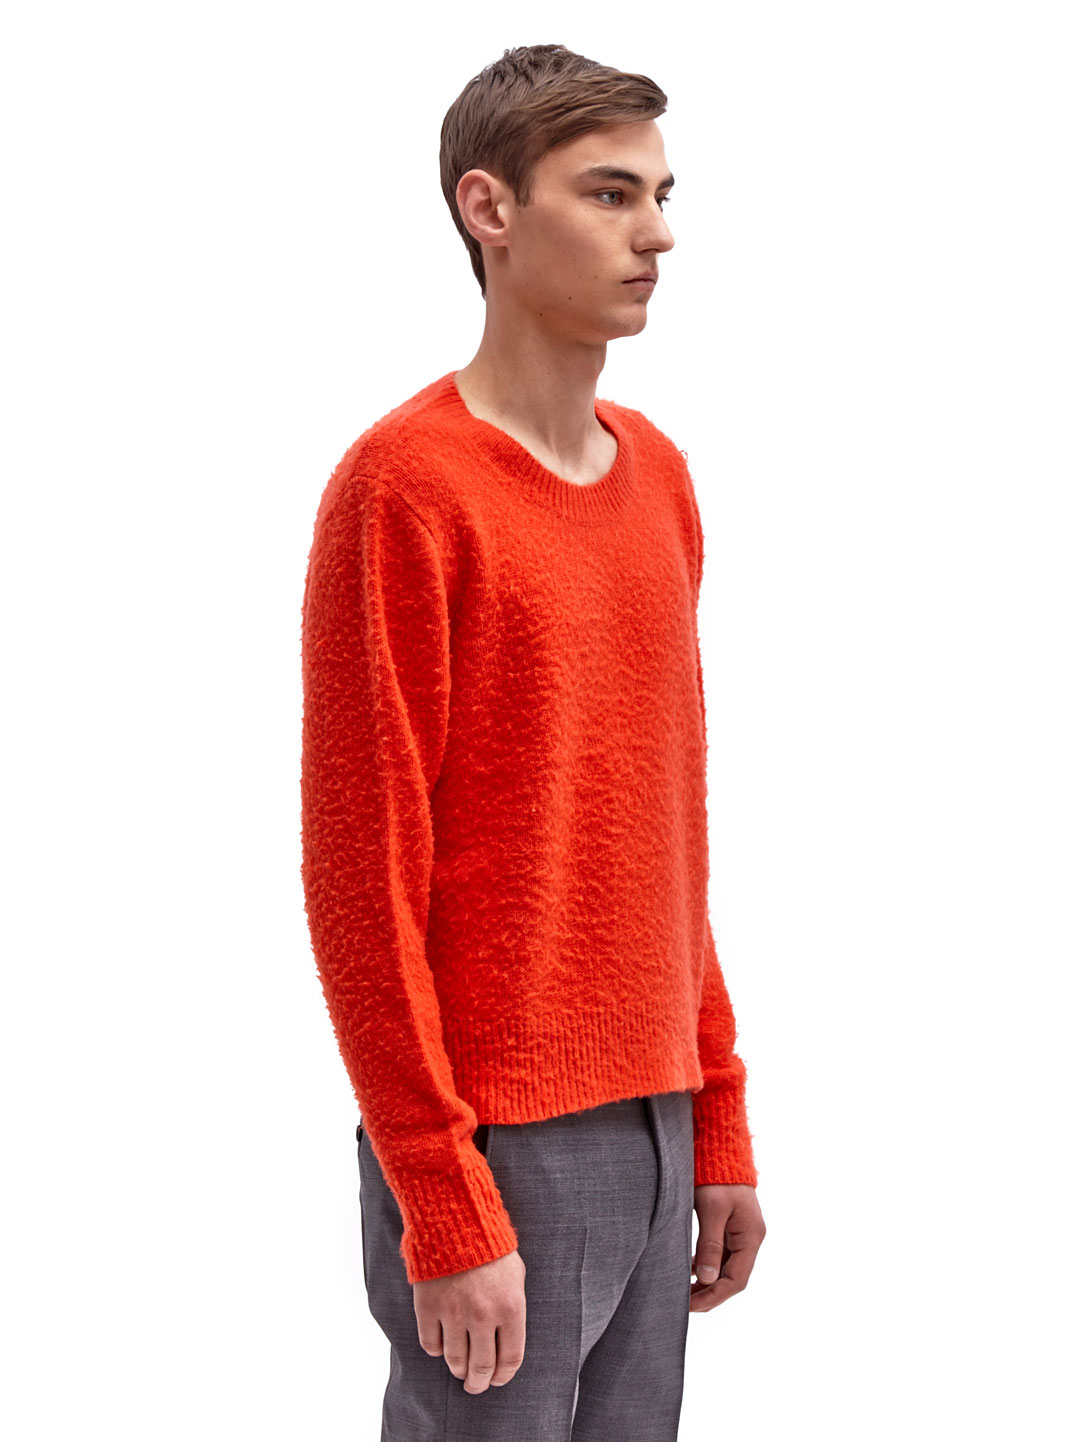 acne studios peele sweater in orange for men lyst. Black Bedroom Furniture Sets. Home Design Ideas